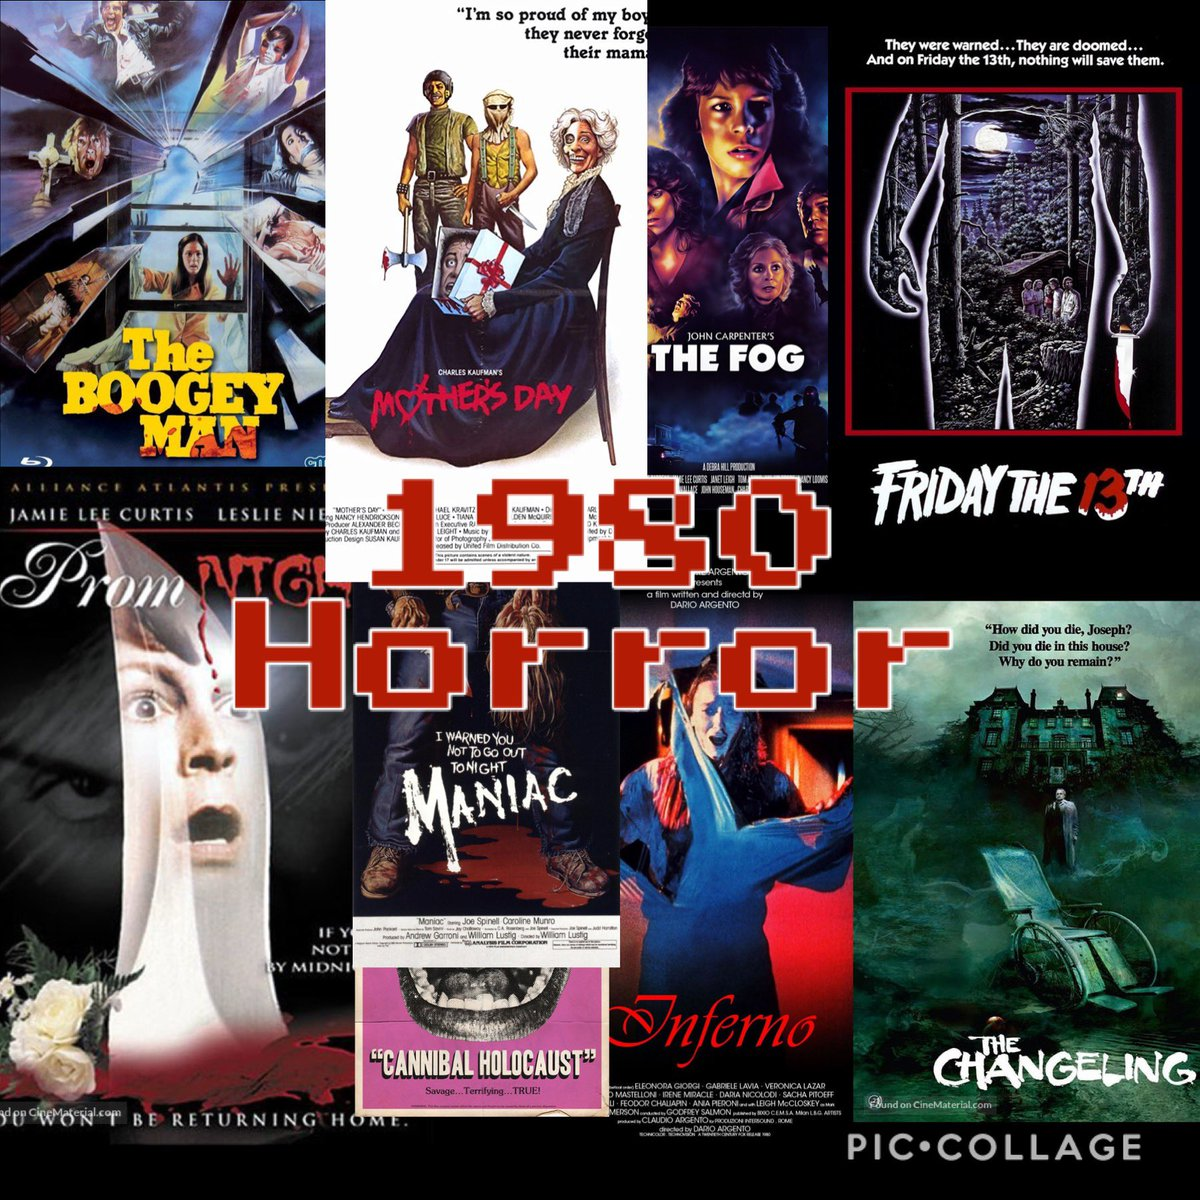 I made this! What's your favorite #horror movie from 1980 #HorrorFamily #MutantFam ?  Cannibal Holocaust Friday the 13th Inferno Mother's Day Prom night The Boogey Man The Changeling The Fog pic.twitter.com/6nLlSxIAjq